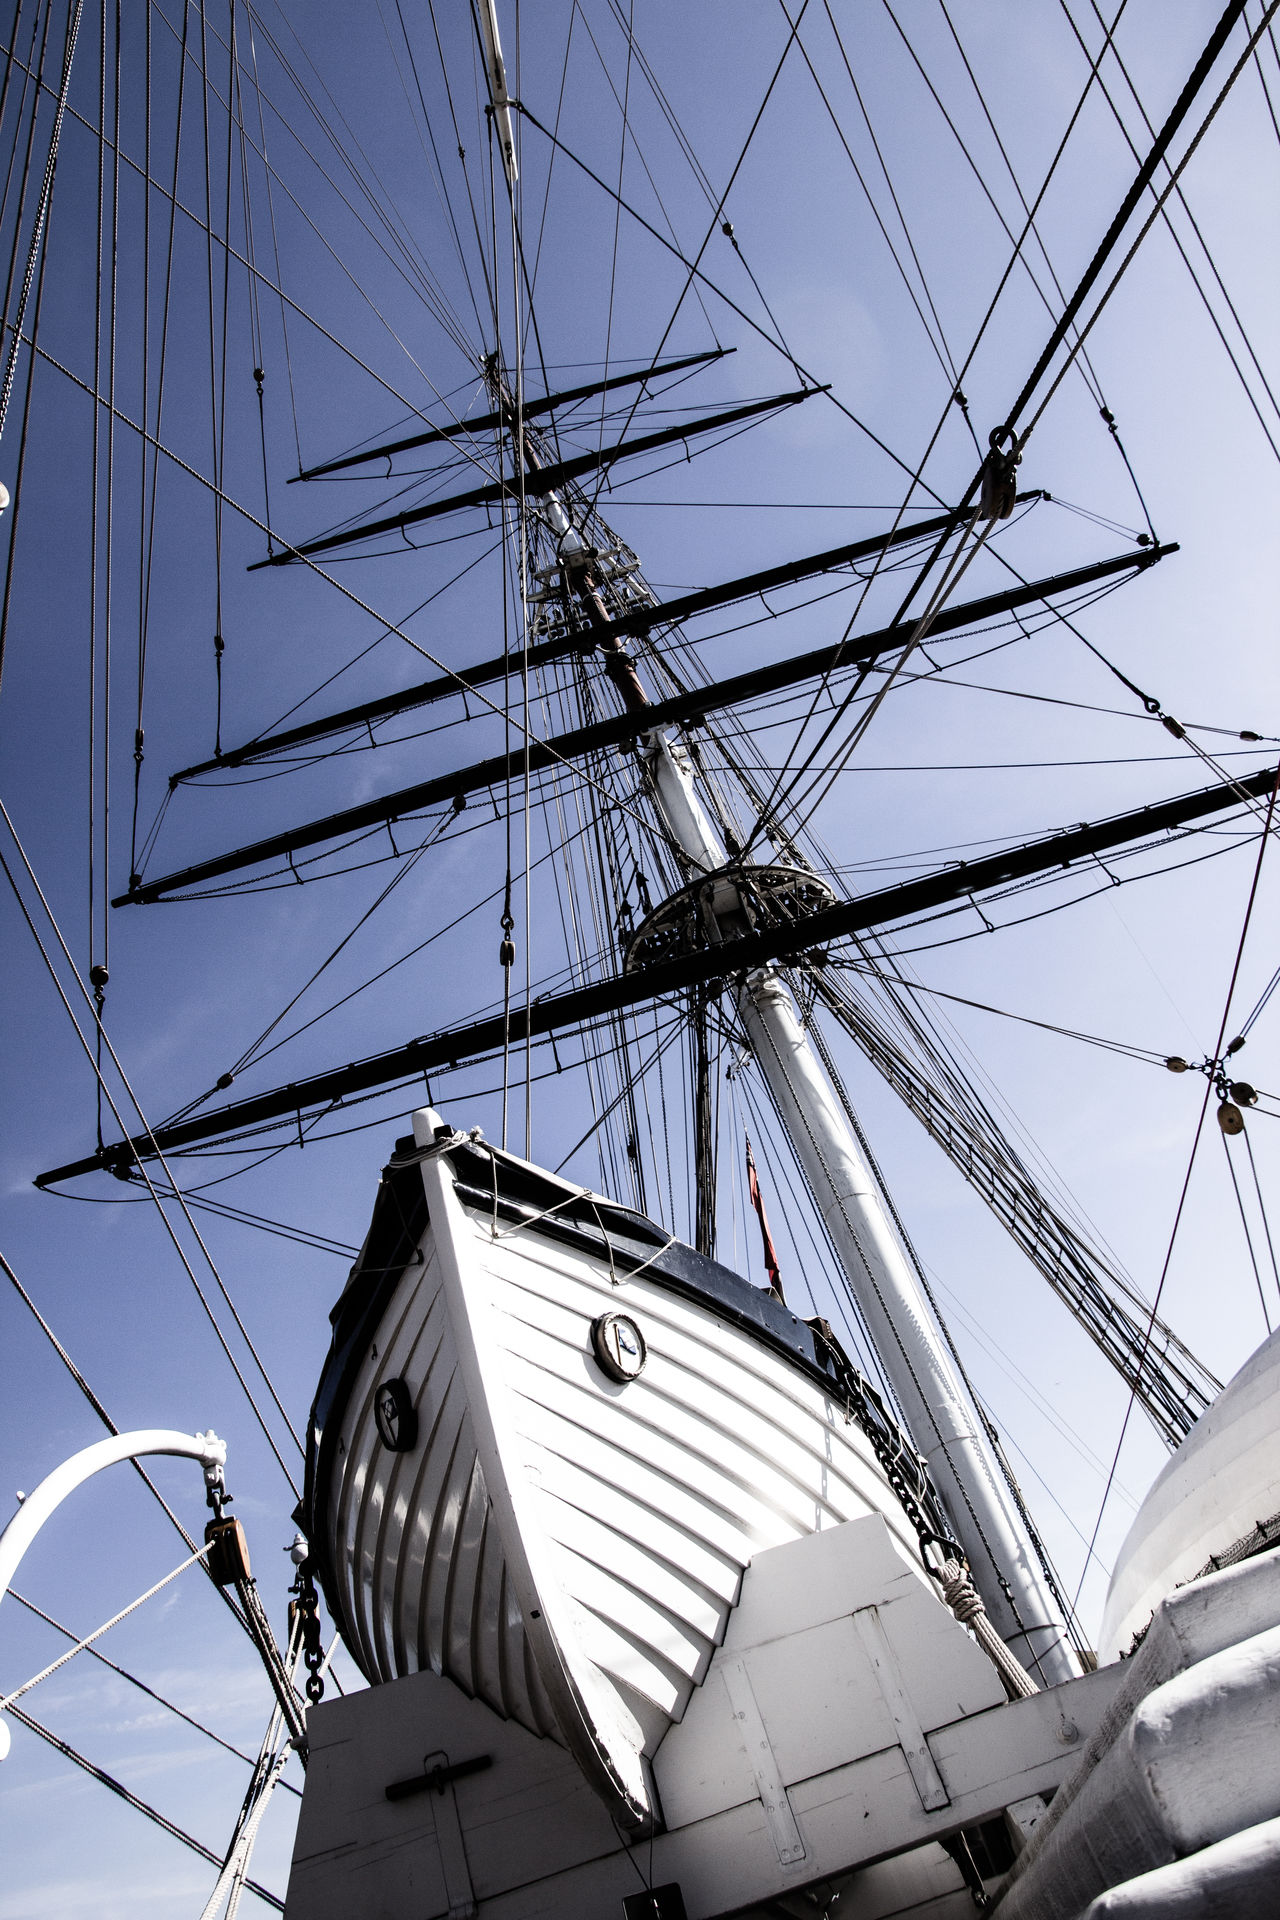 On the Cutty Sark Abstract Architecture Boat Low Angle View Marine Mast Old Boat Rigging Ship Sky Tall Ship Wooden Boat